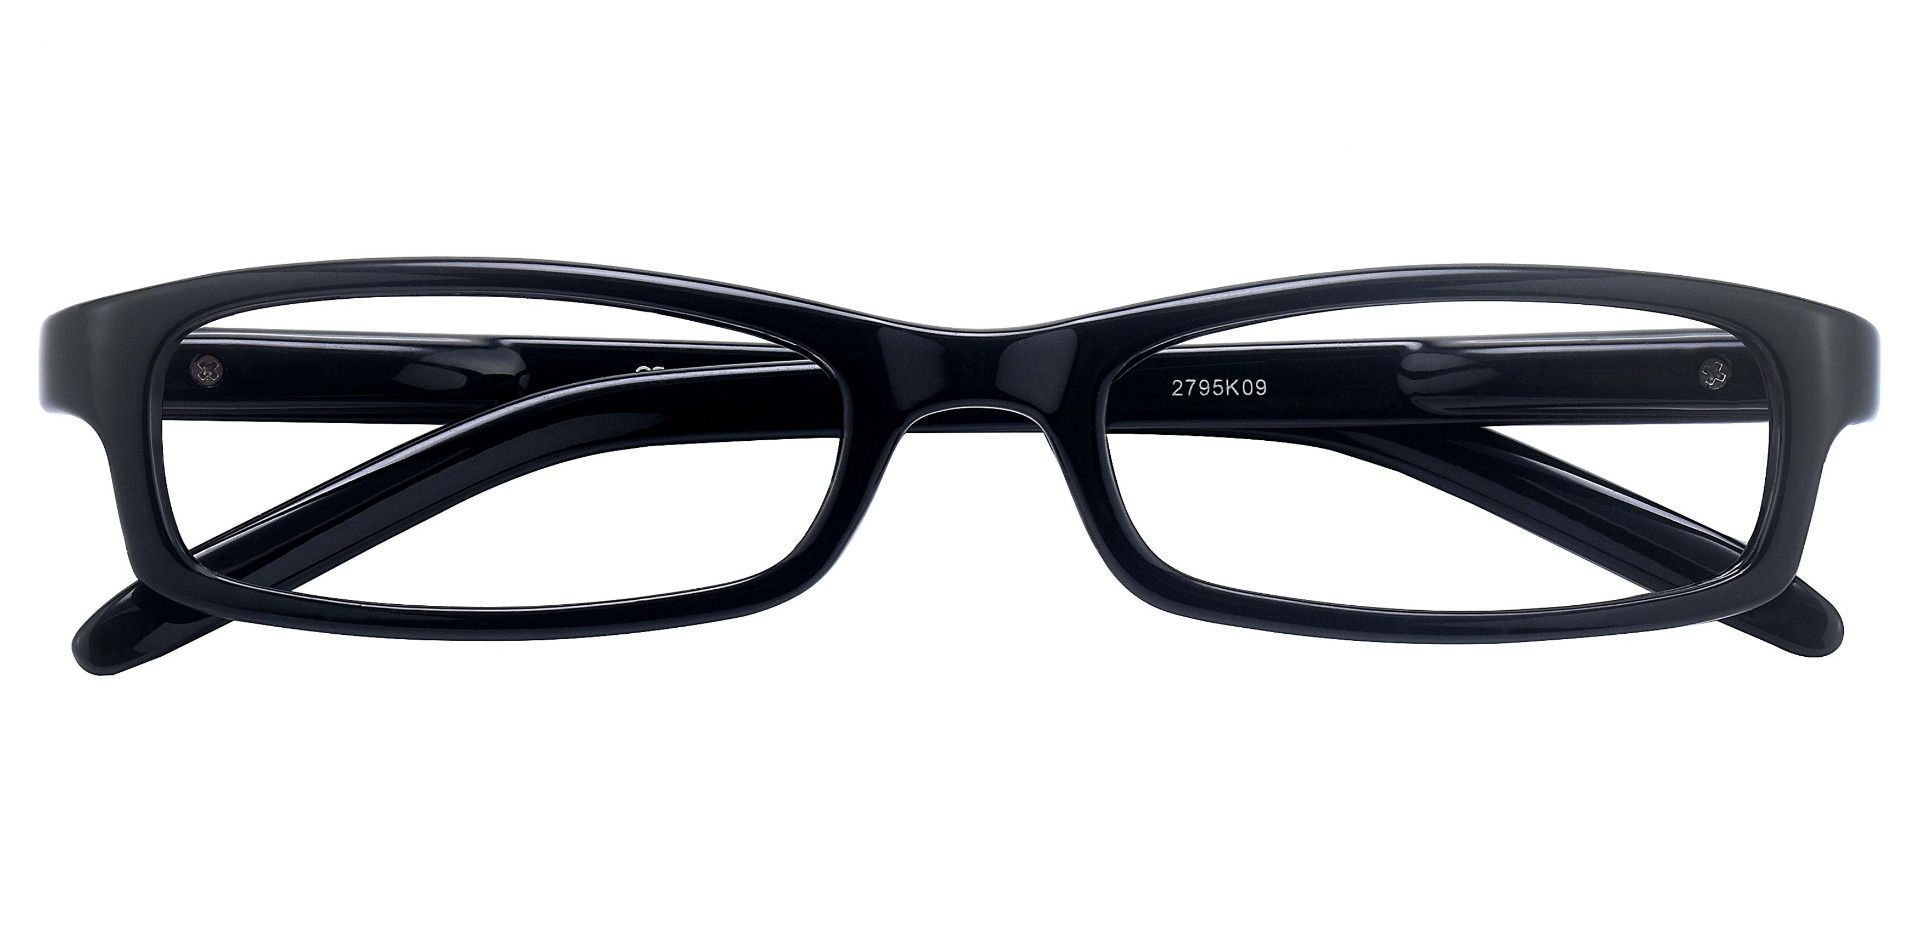 Palmer Rectangle Single Vision Glasses - Black